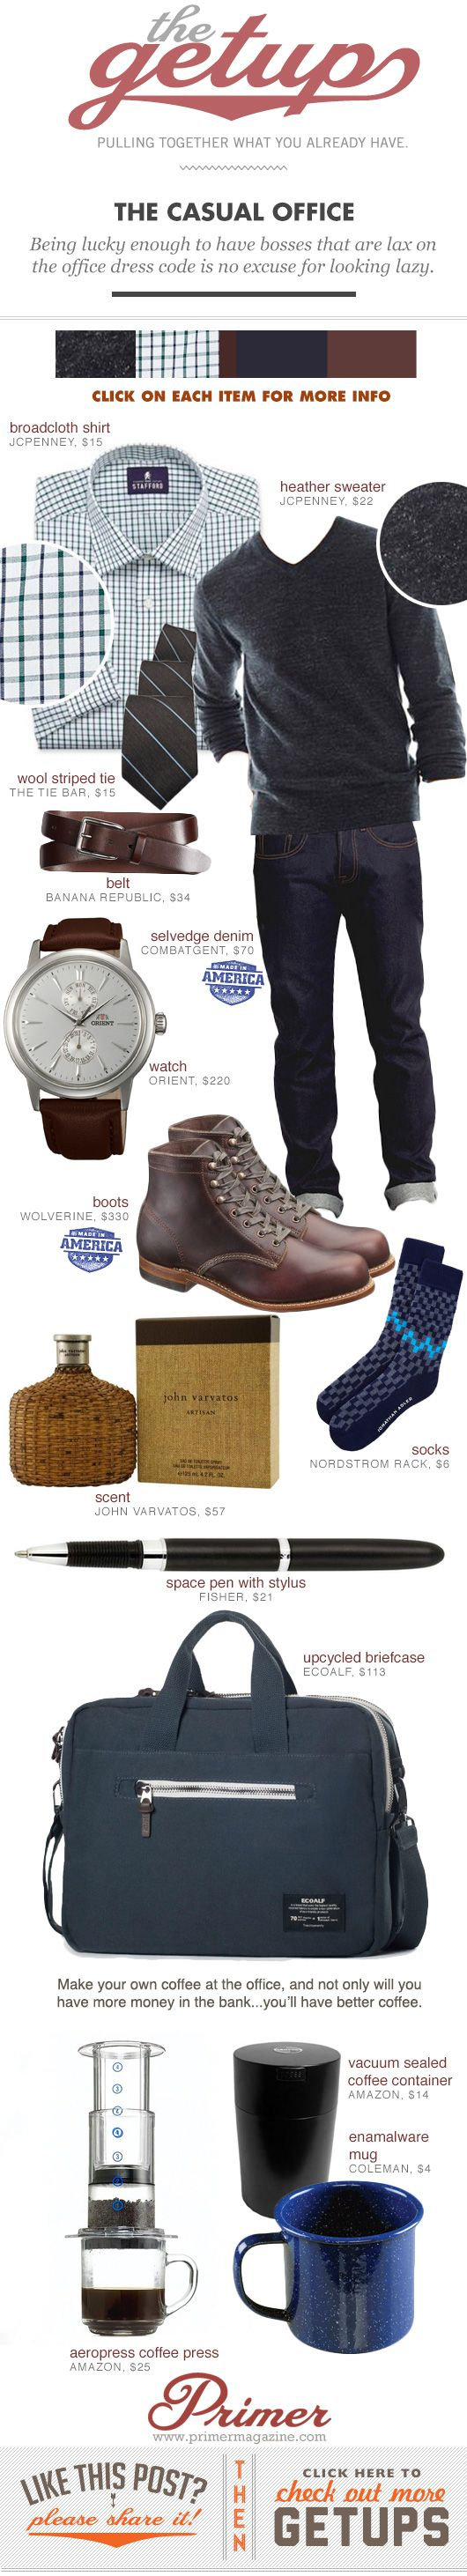 Fall Getup Week: The Casual Office - Primer < This is pretty much my ideal getup for doing anything.